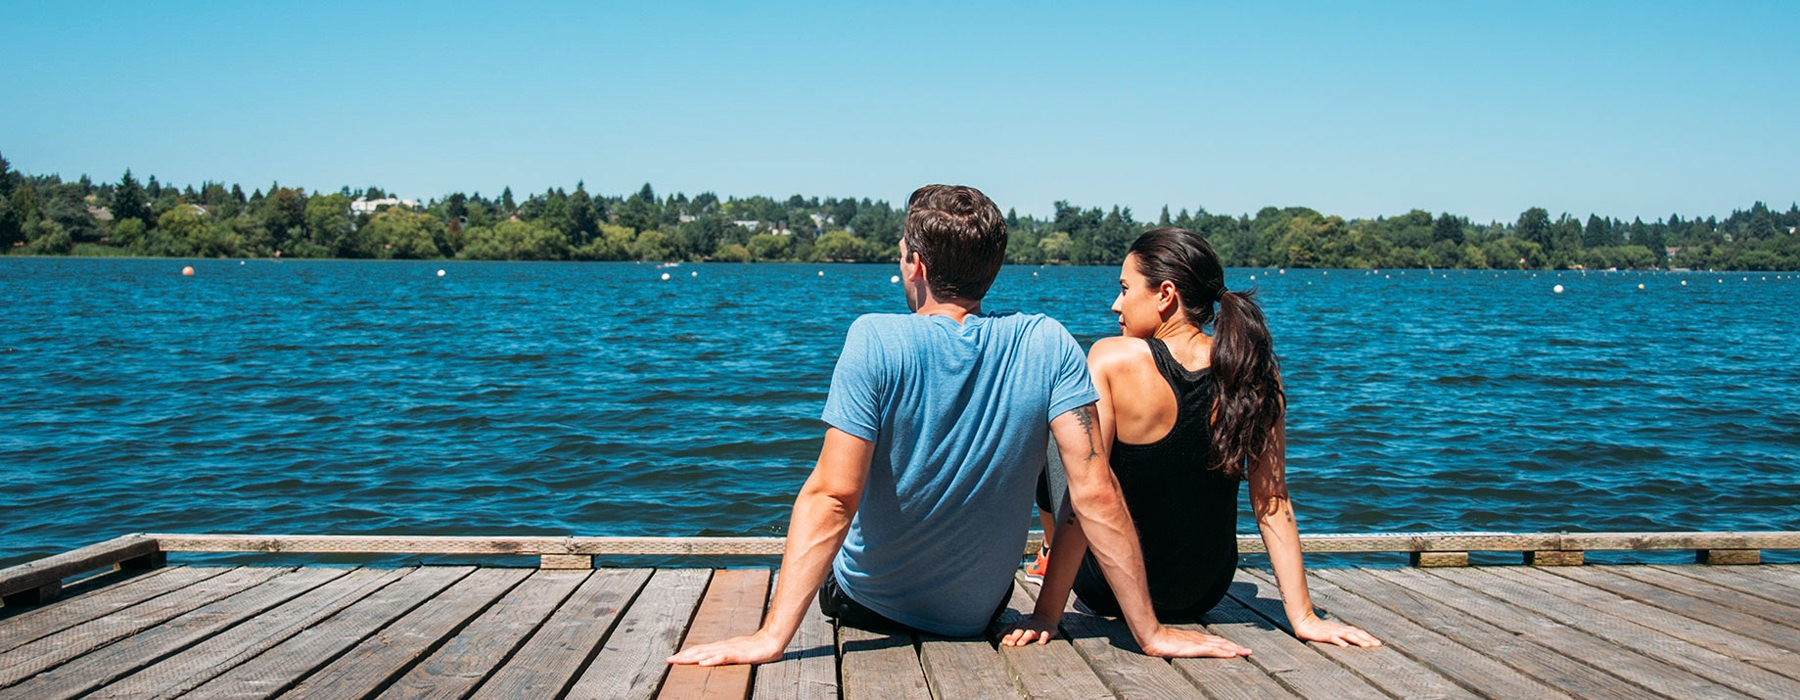 couple sitting on the dock looking at the lake